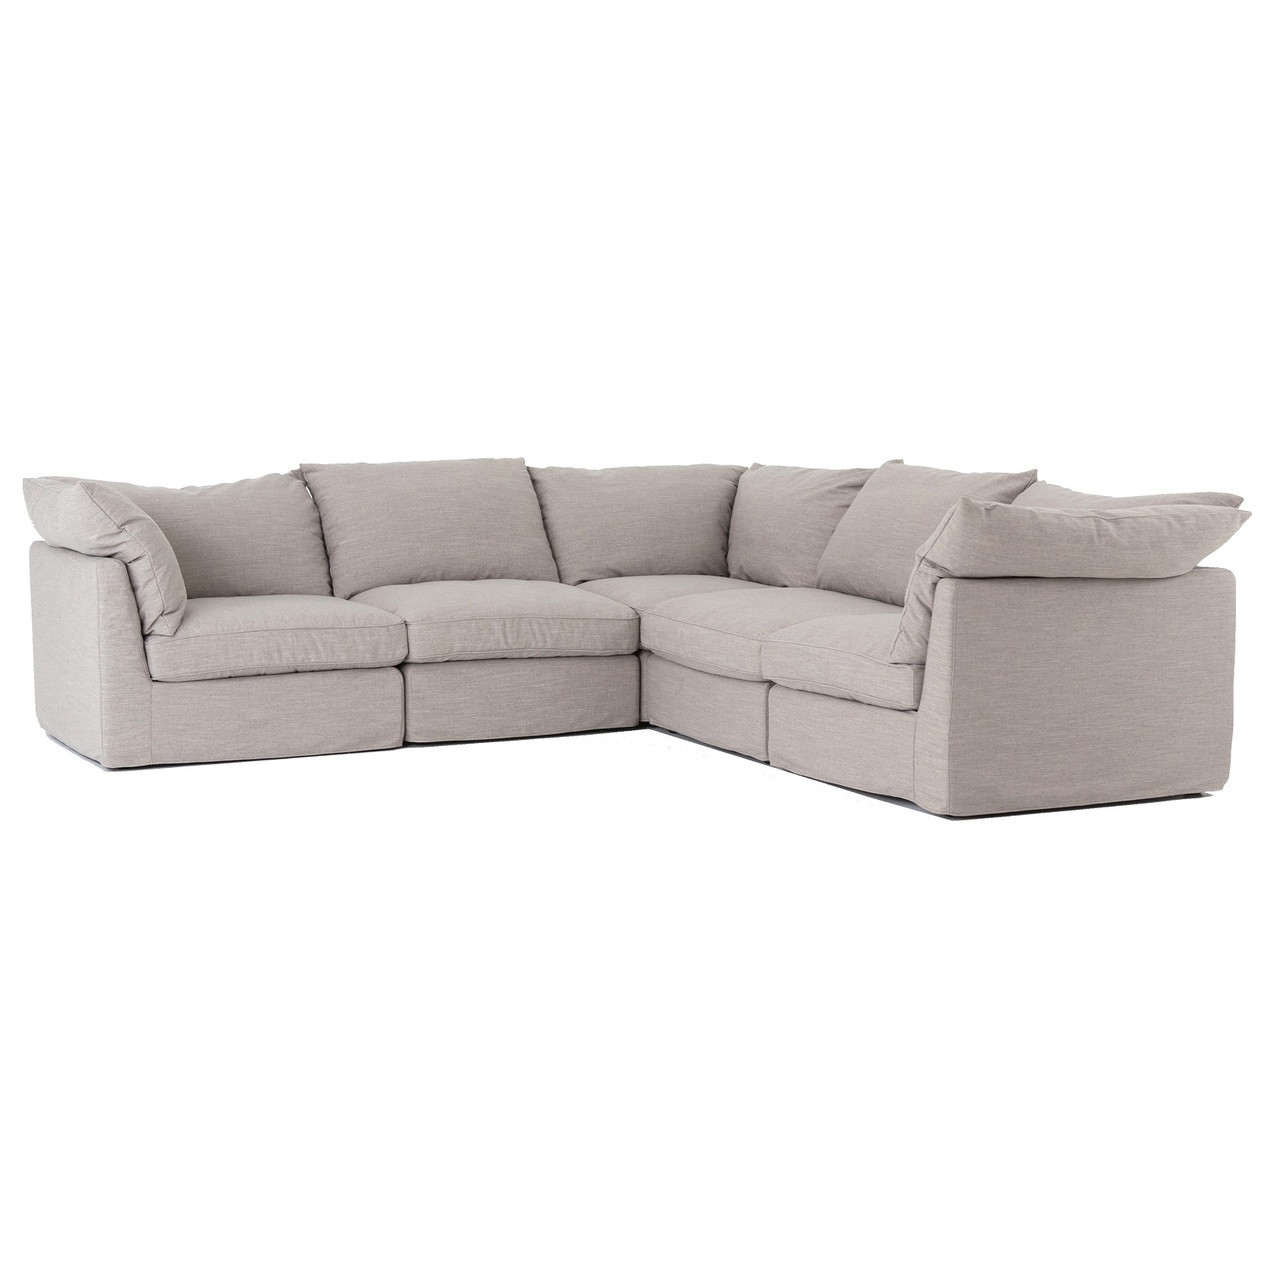 Sofa L Images Paul Coastal Grey L Shaped 5 Pc Modular Corner Sectional